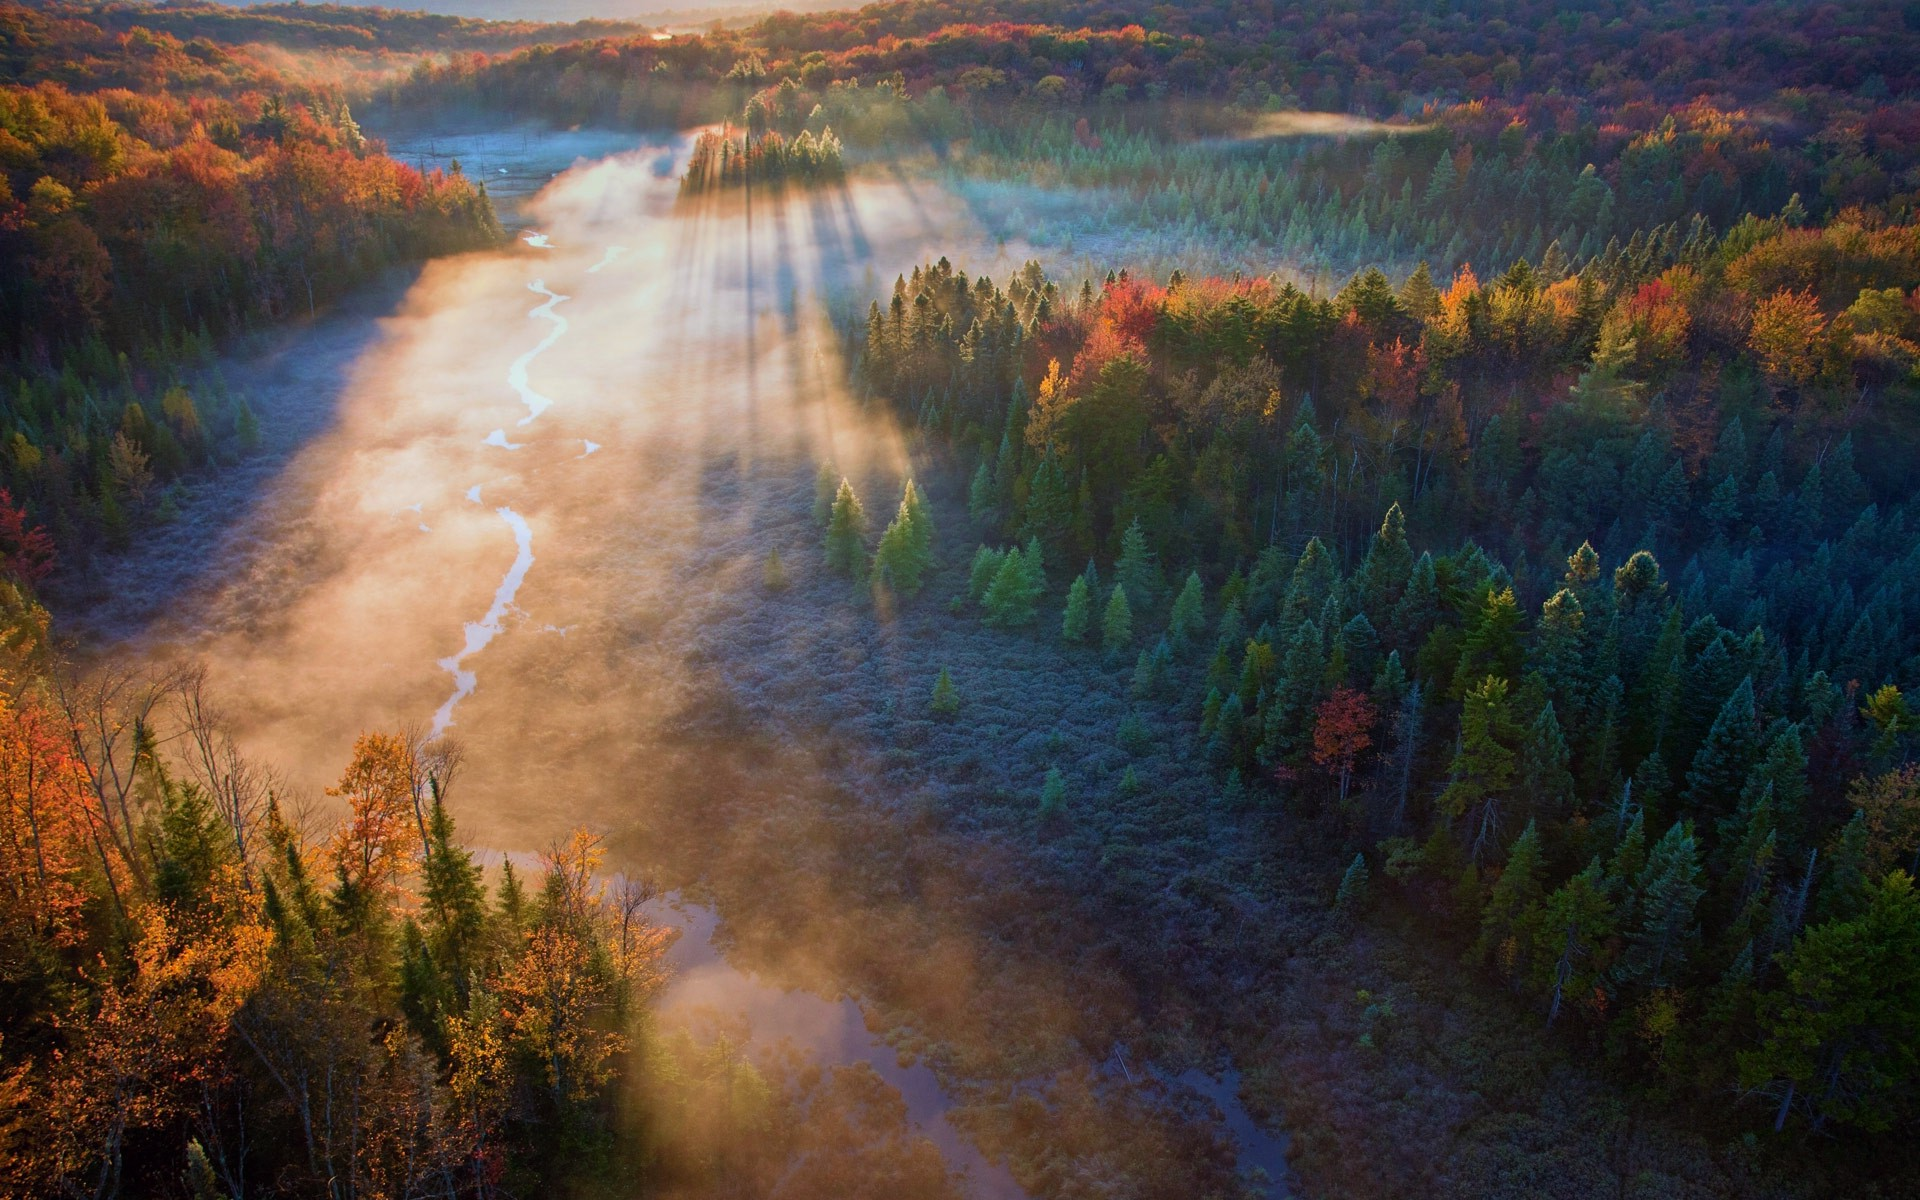 Fall Wallpaper For Computer Screen Forest Mist Sunrise Trees Field River Sun Rays Fall